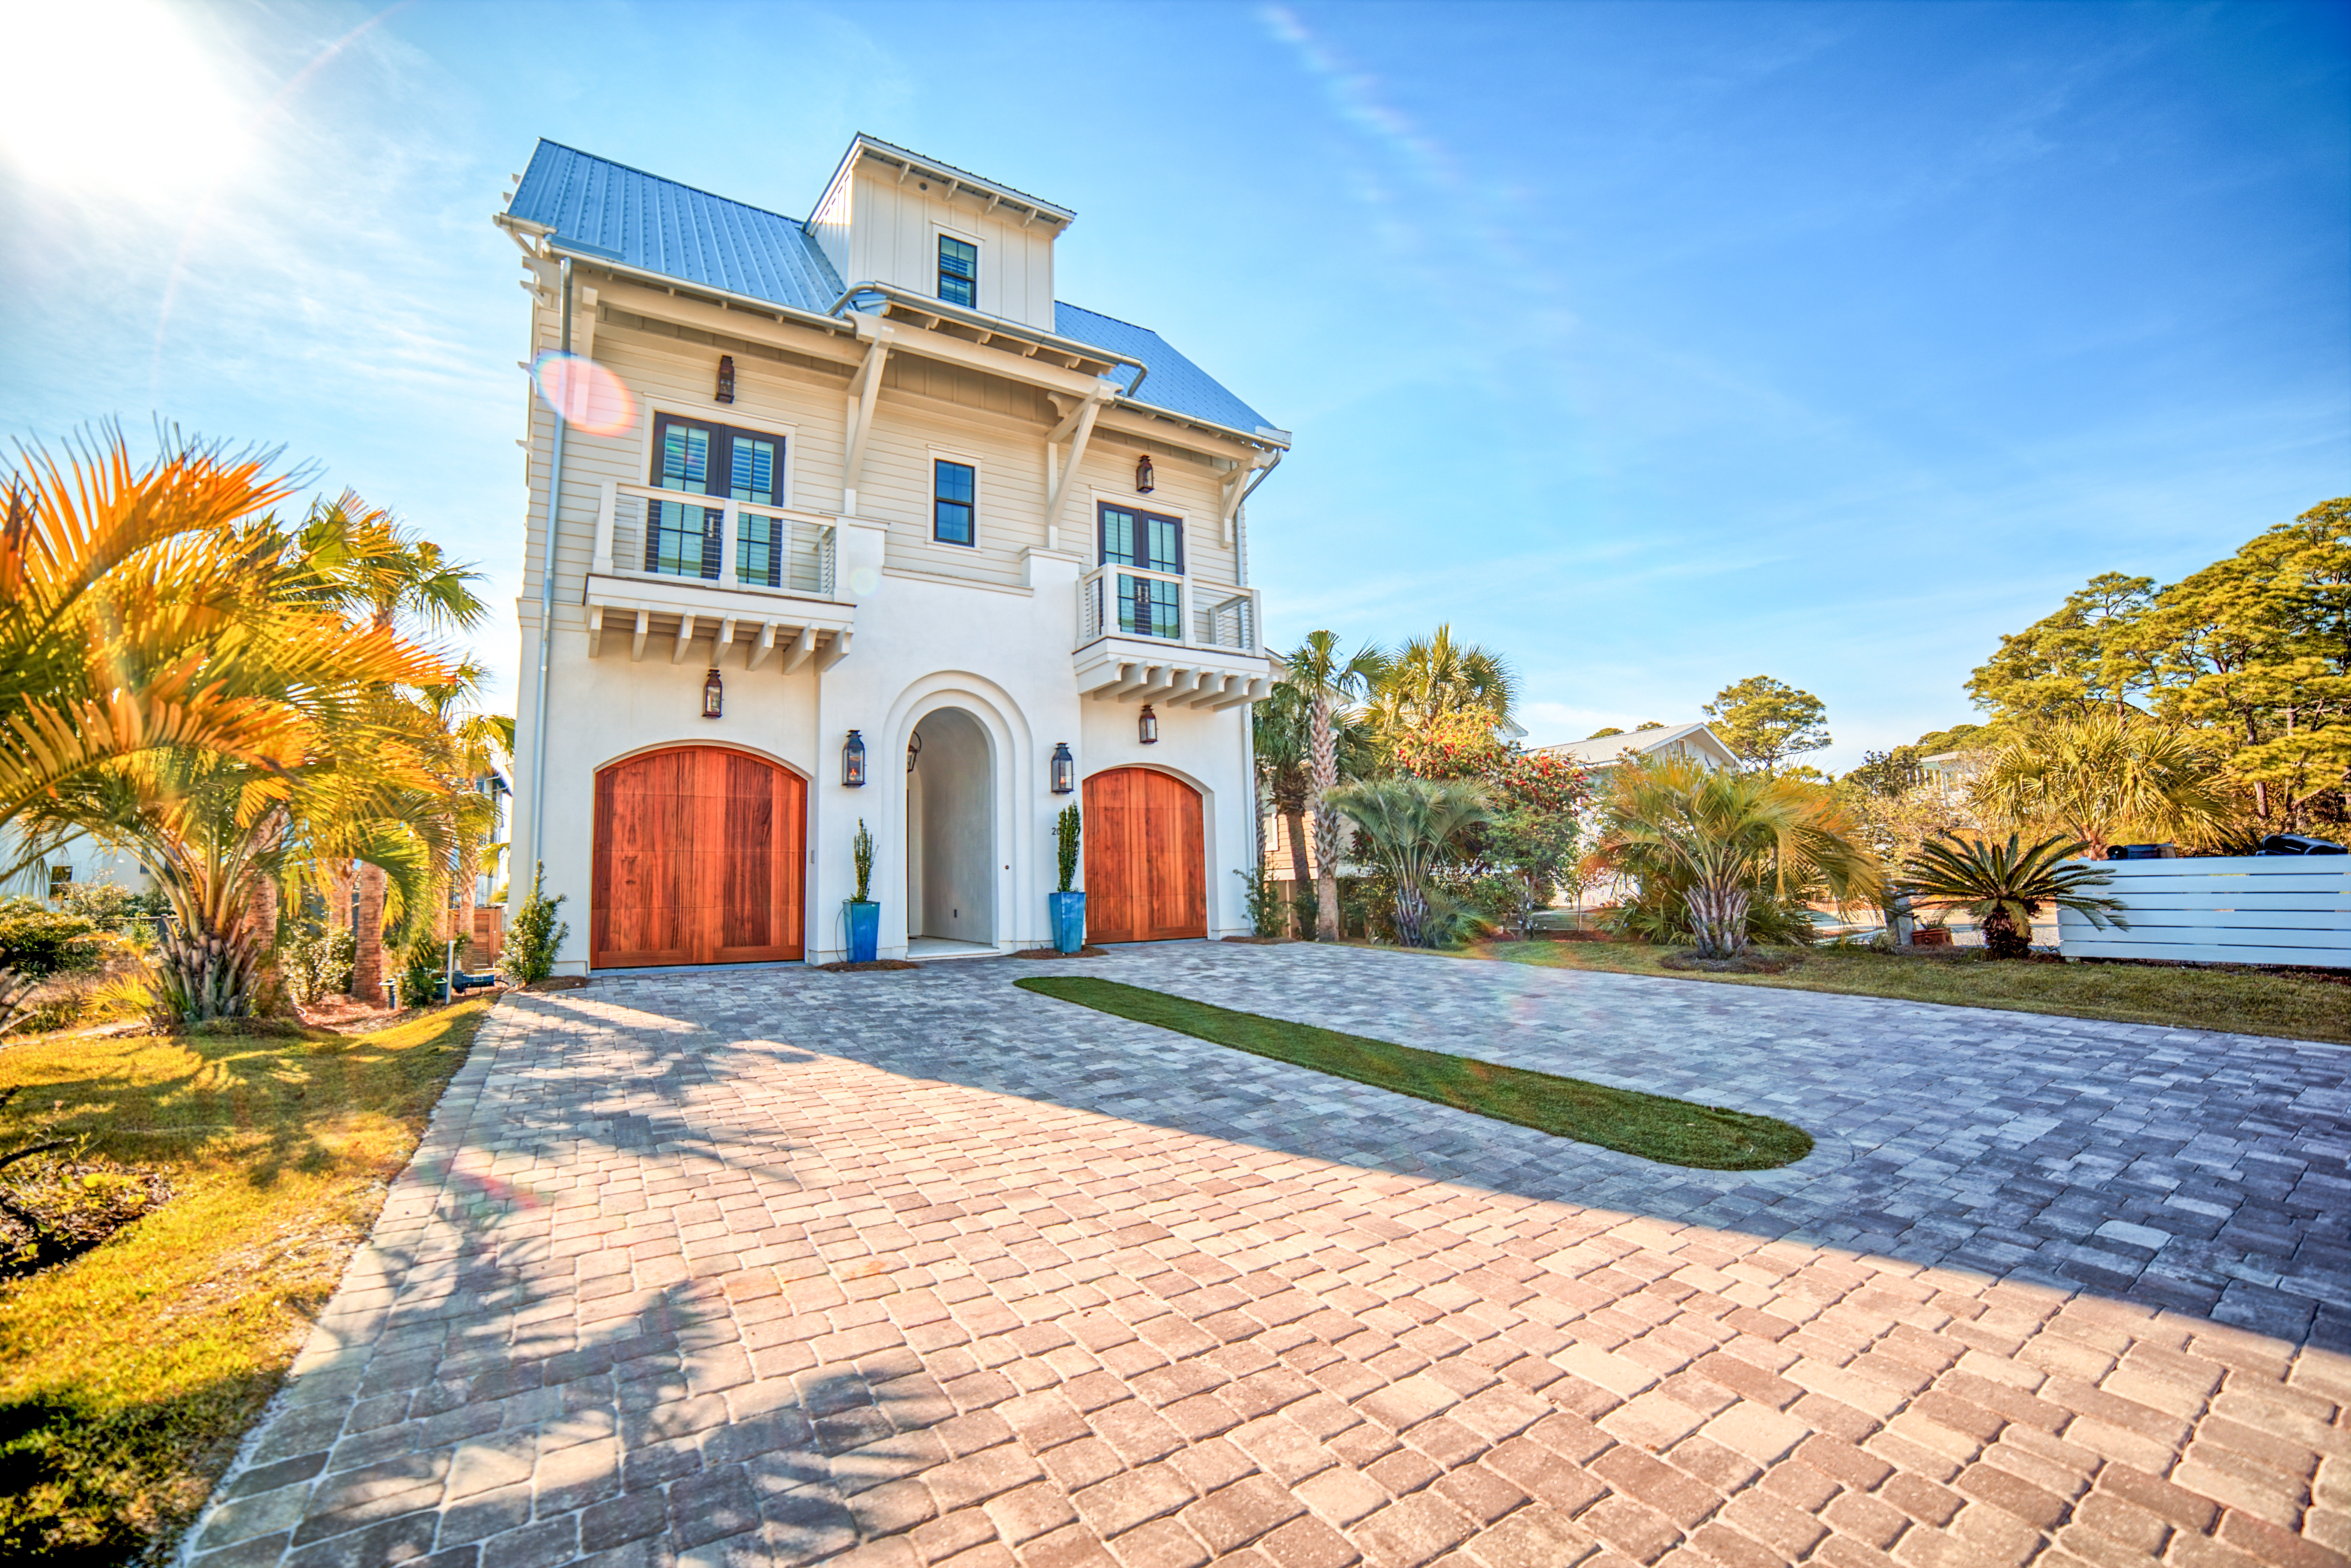 this home is located in the famous grayton beach it is located on magnolia street which is just one street over from the red bar